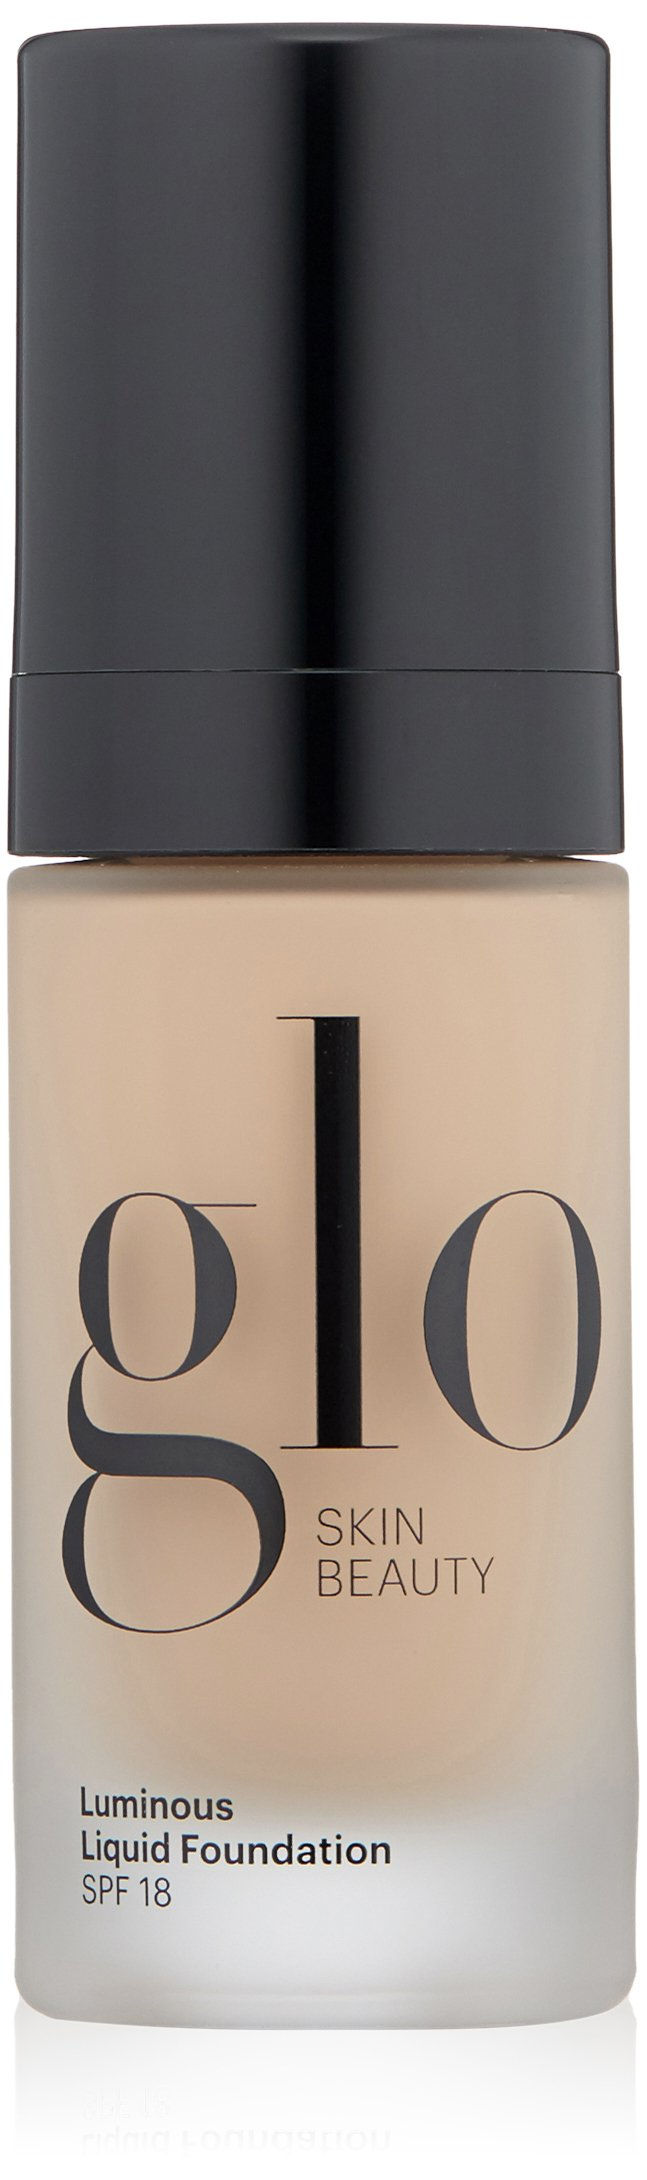 Glo Skin Beauty Luminous Liquid Foundation SPF 18 in Naturelle | 10 Shades | Sheer Coverage, Dewy Finish | 1 fl. Oz. by Glo Skin Beauty